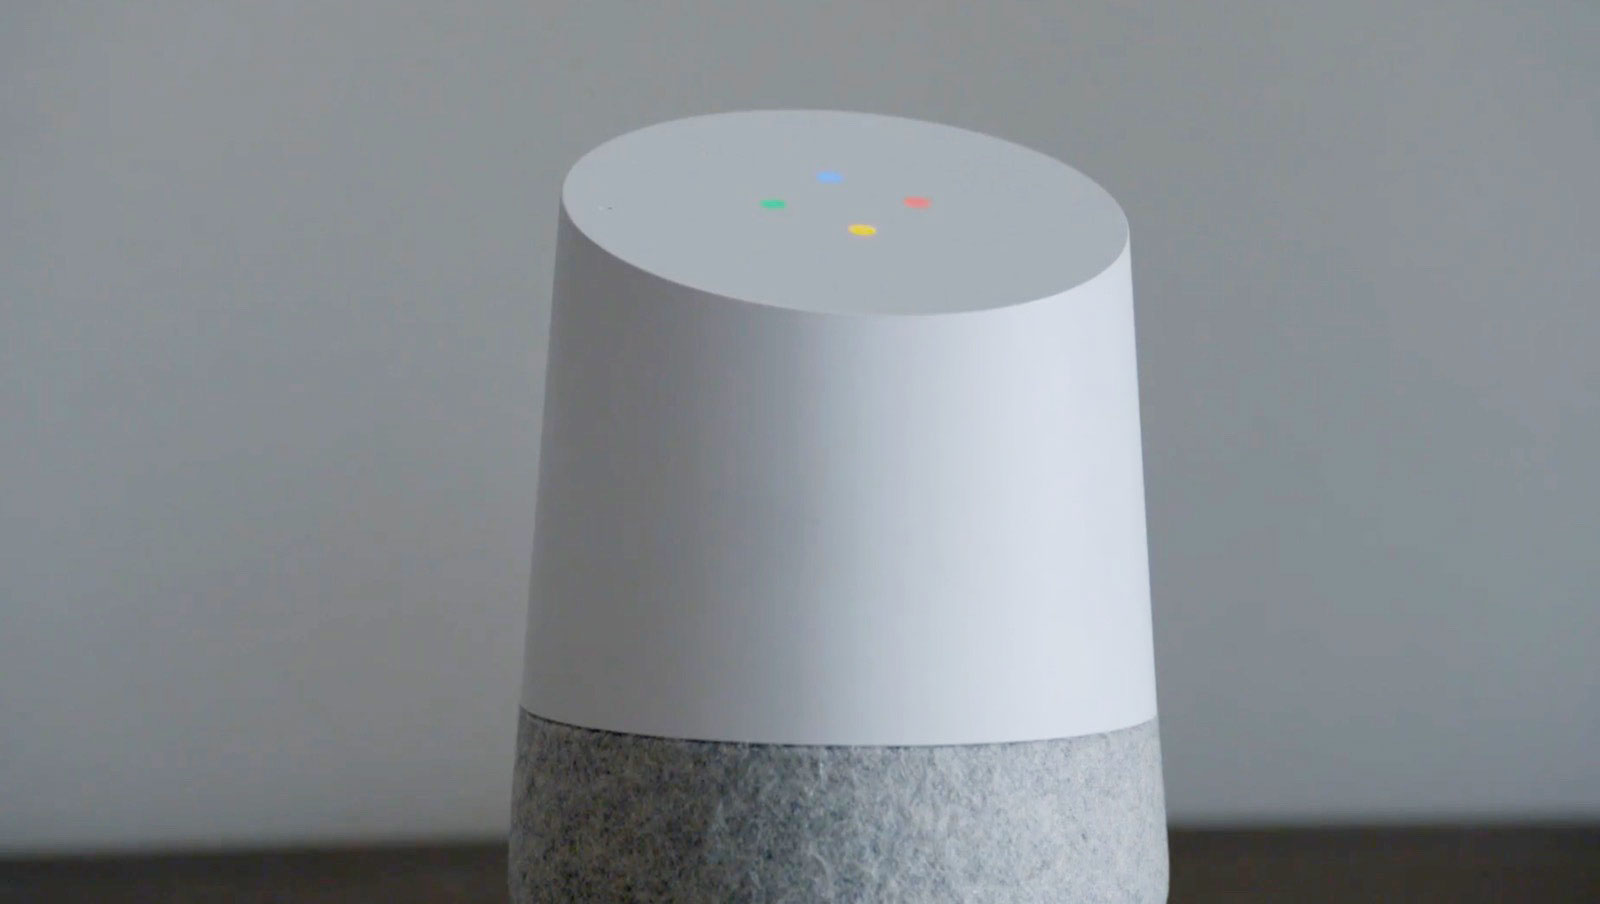 google-home-screen-1600